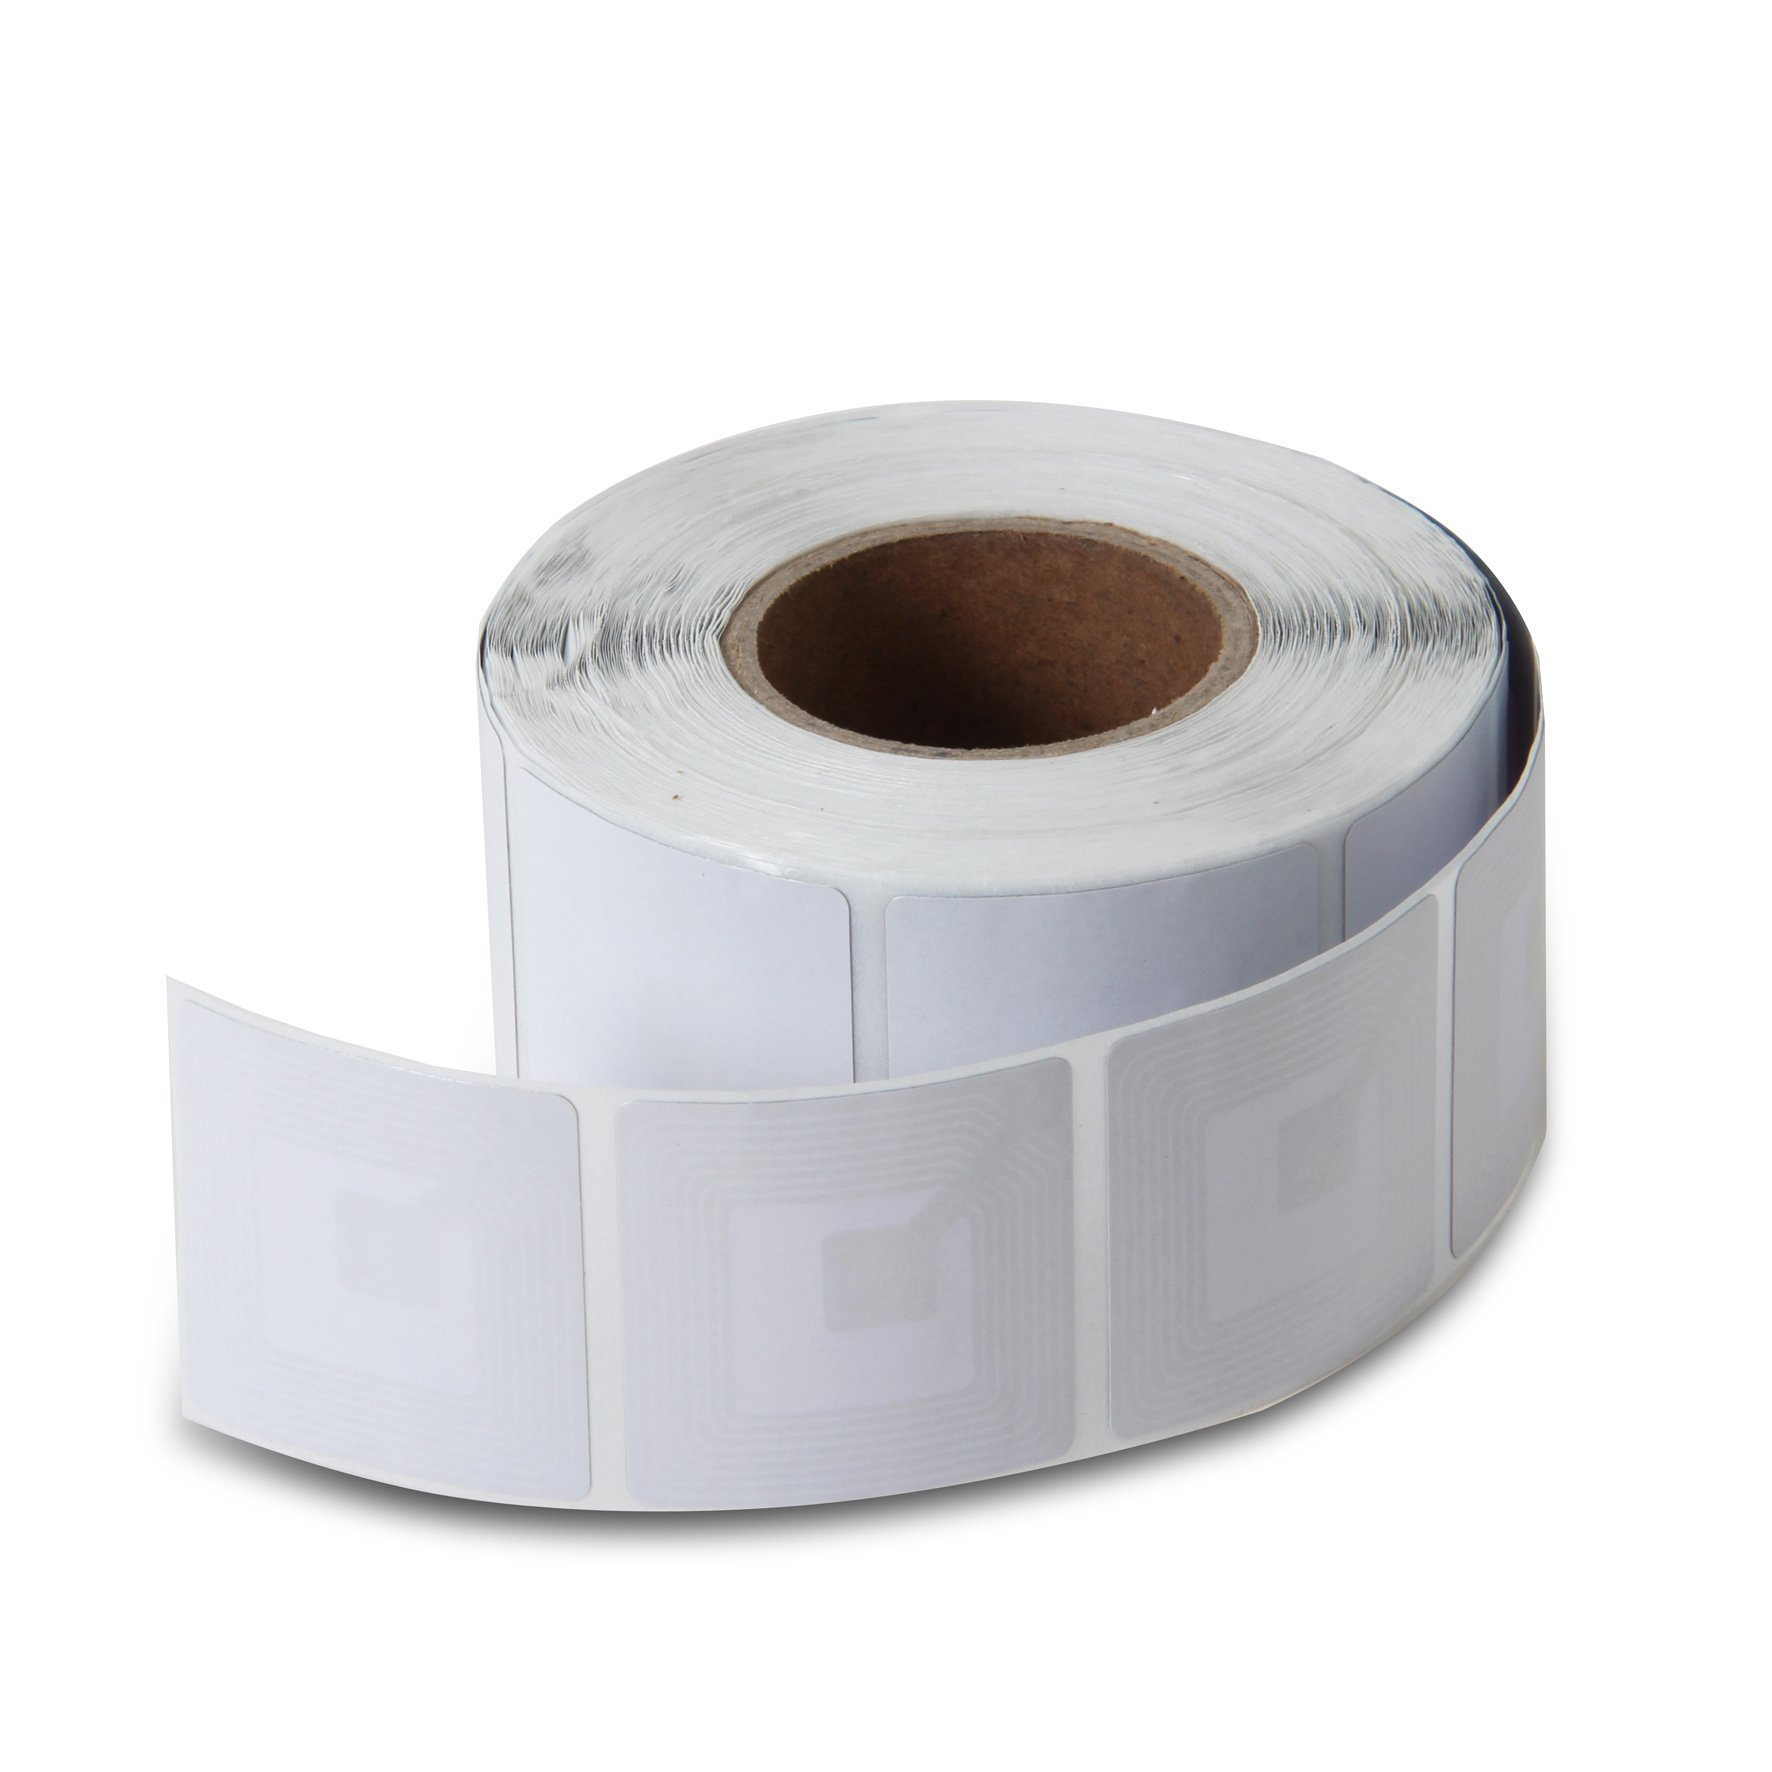 10000 Paper Security Labels 1.5X1.5 Inch Rf 8.2Mhz White Checkpoint Compatible Eas Loss Prevention by Sensornation (Image #6)